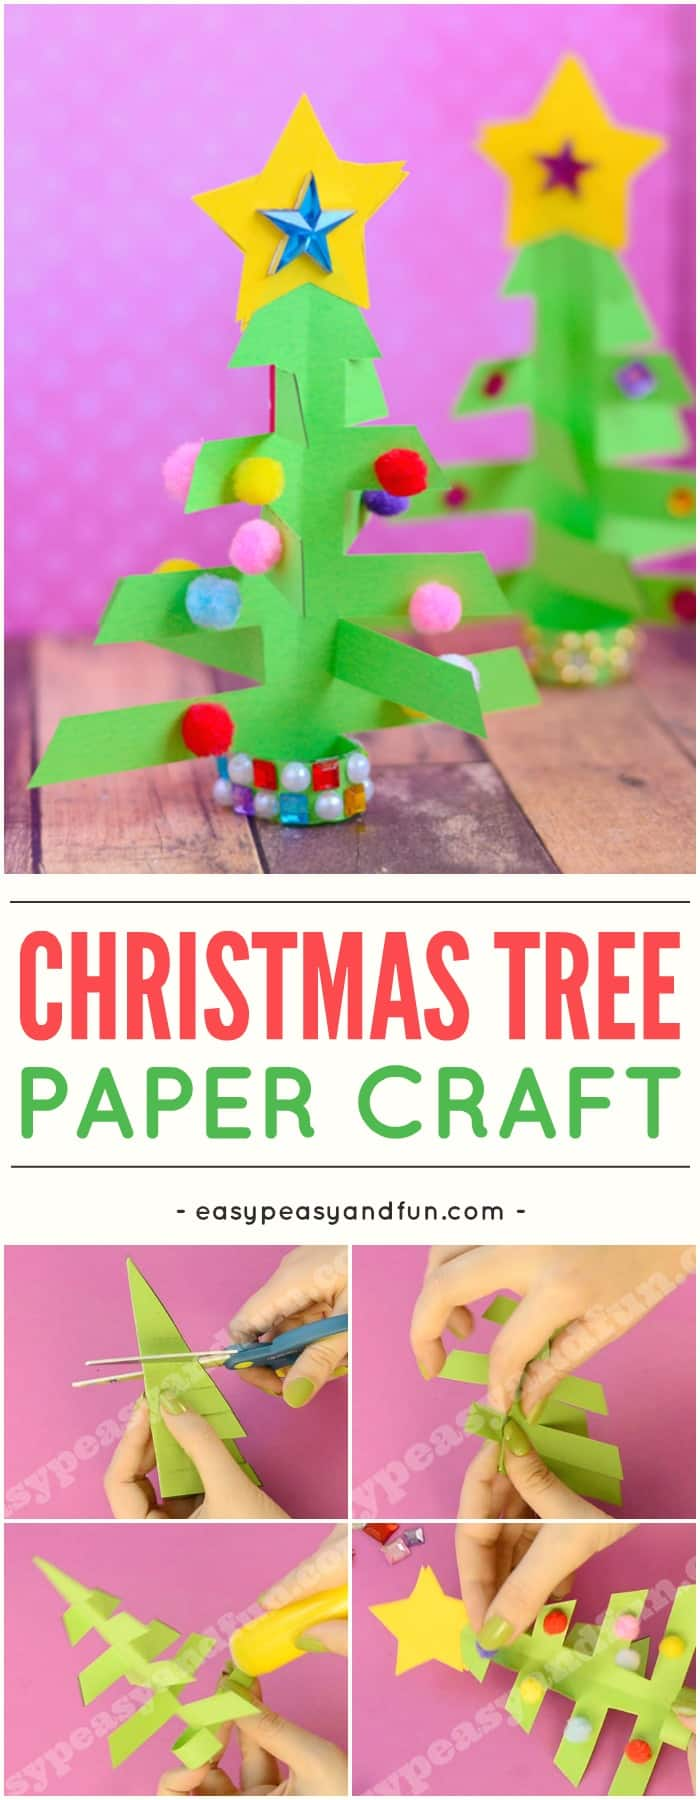 Simplest 3D paper Christmas tree. Super fun Christmas activity for kids to make. #ChristmasCrafts #ChristmasTreeCraft #Christmascraftsforkids #Christmas #Craftsforkids